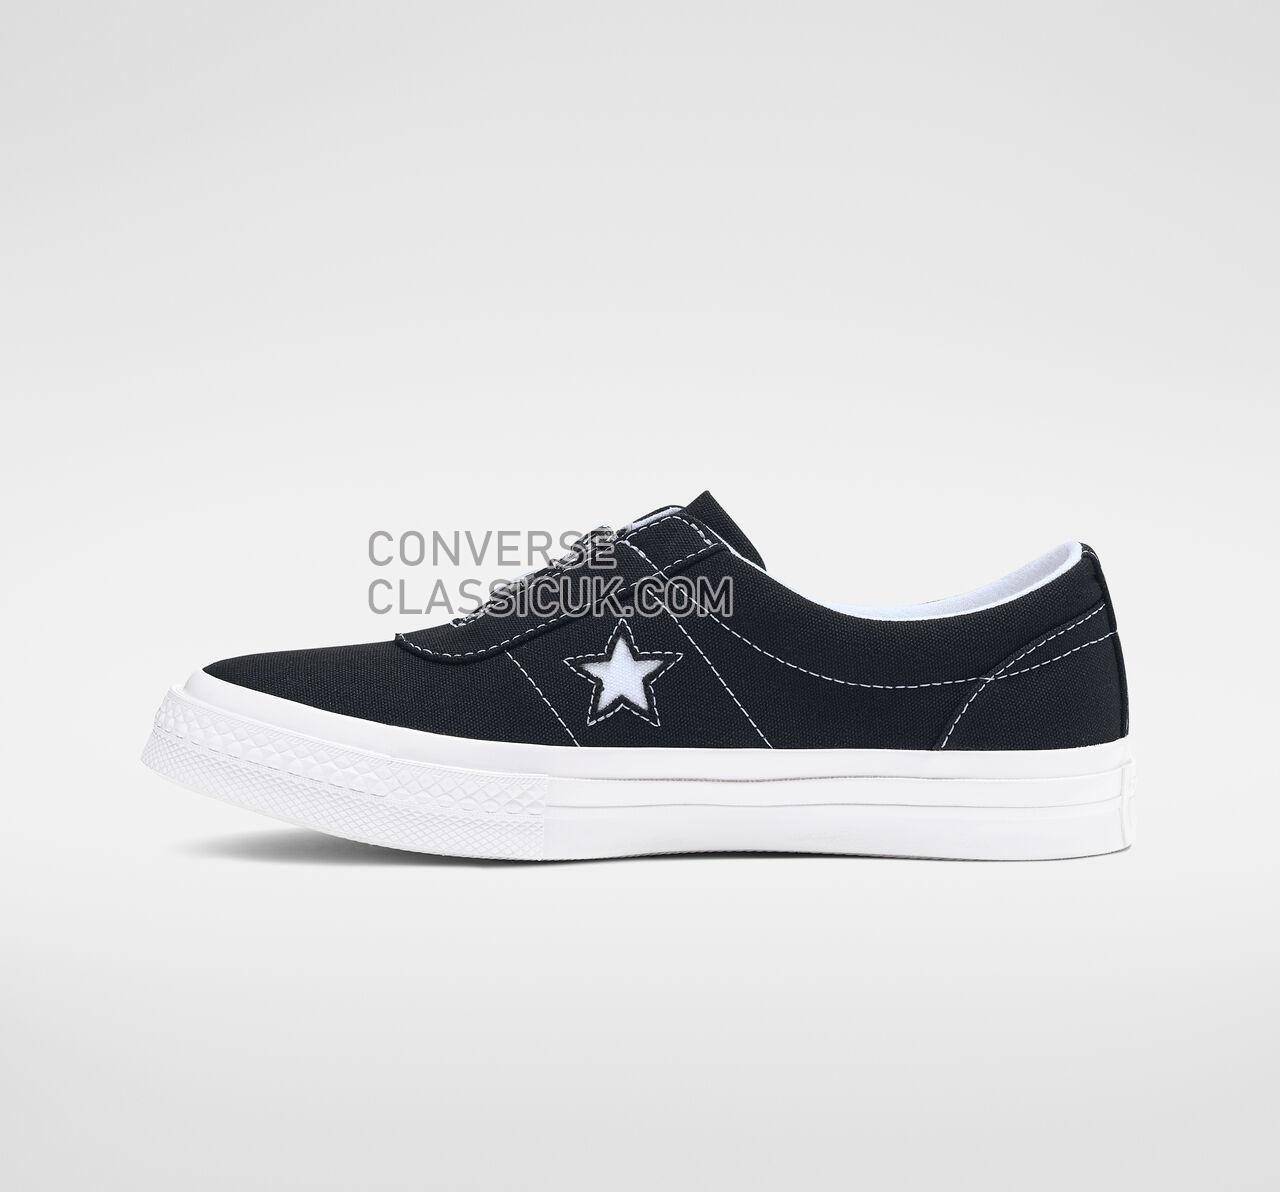 Converse One Star Sunbaked Slip Womens 564206C Black/White/White Shoes